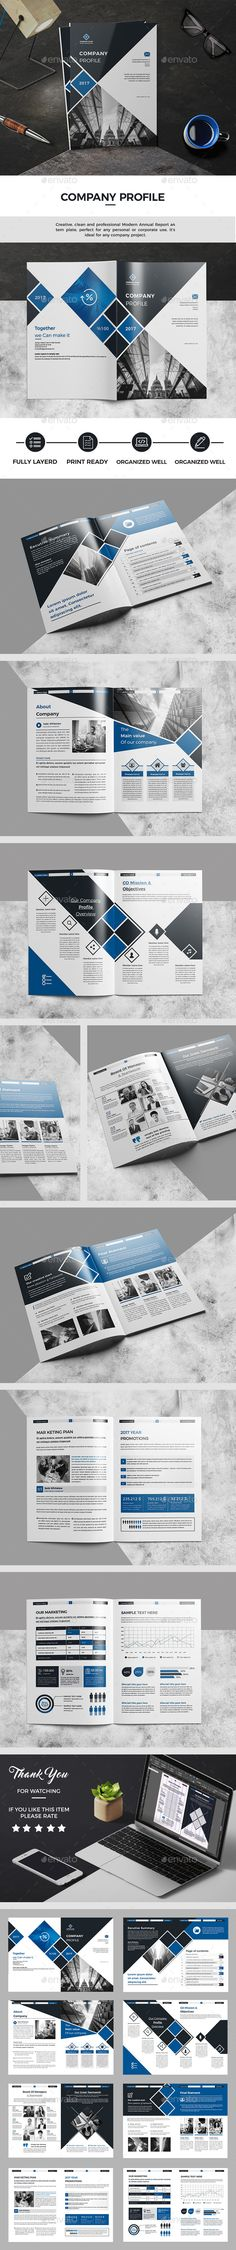 Company Profile — InDesign INDD #brief #visual • Download ➝ https://graphicriver.net/item/company-profile/19269699?ref=pxcr